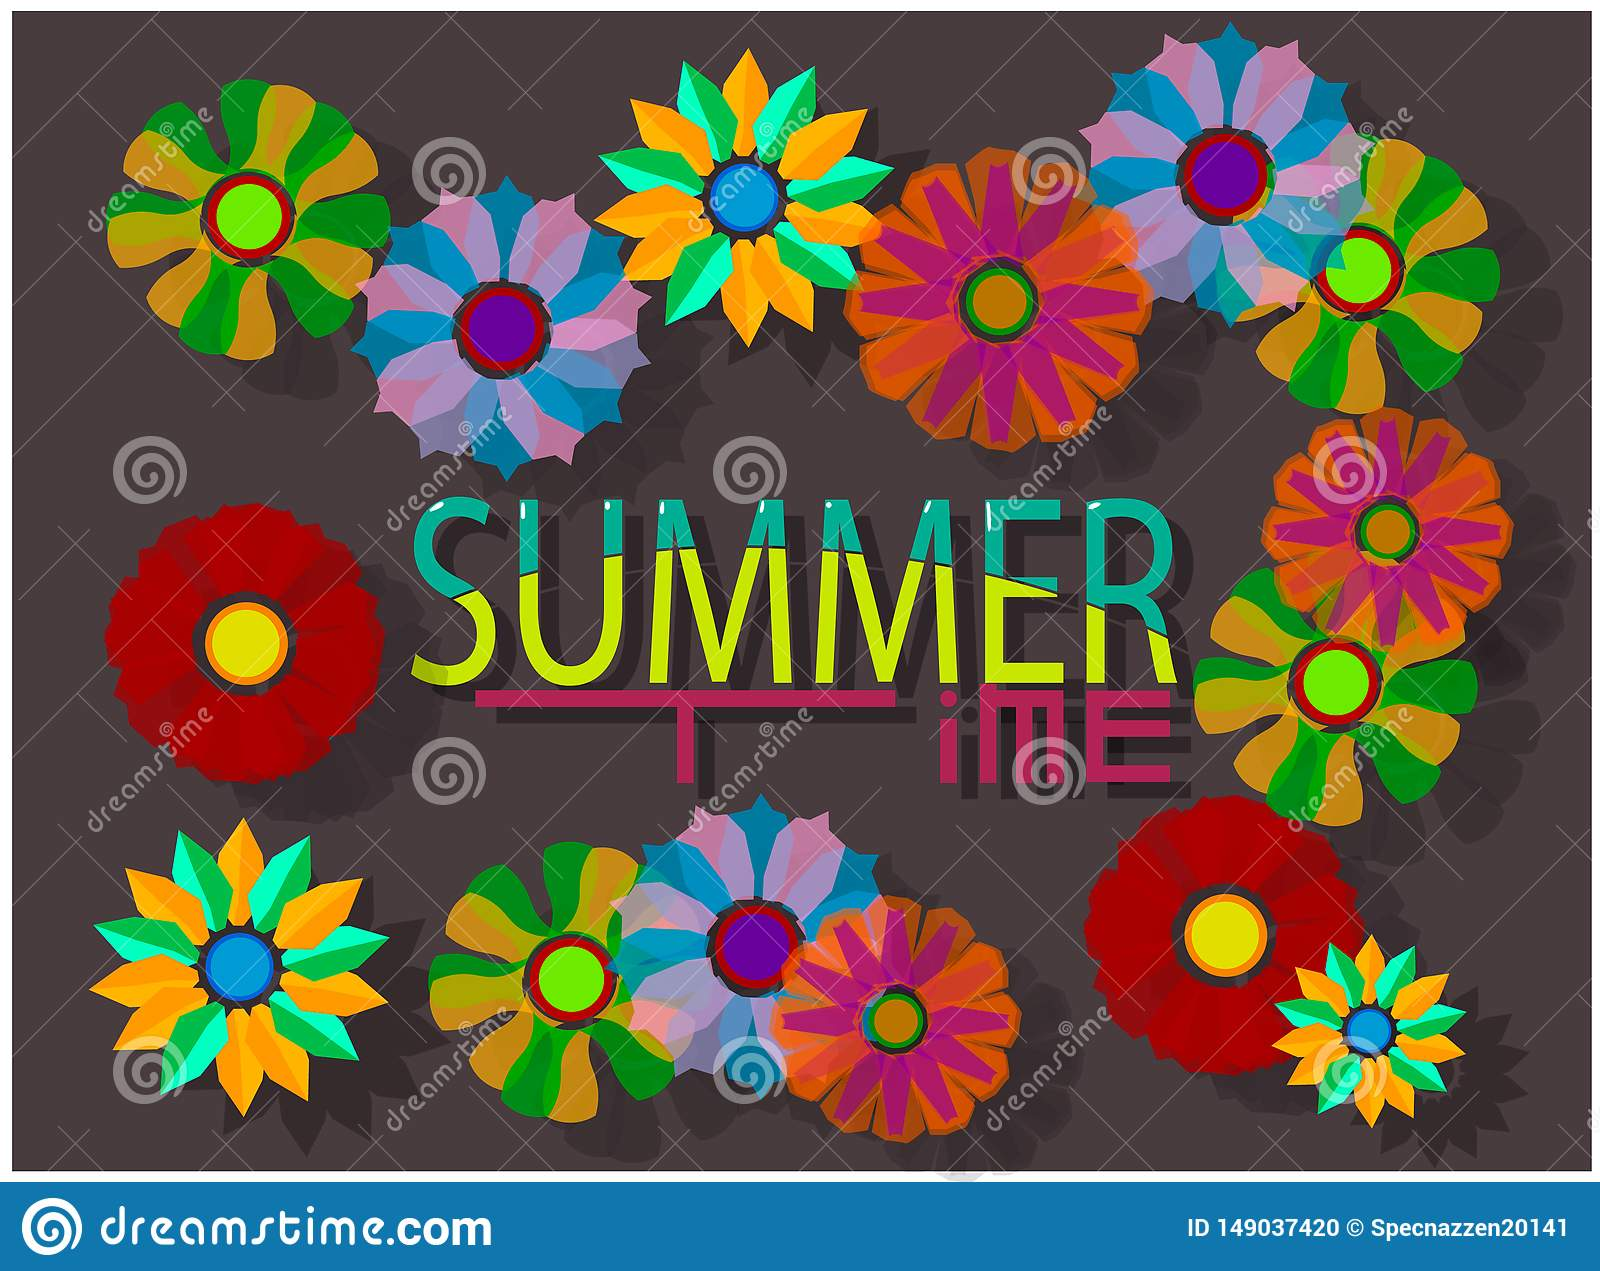 The summer image consists of the words `summer` and `time`.